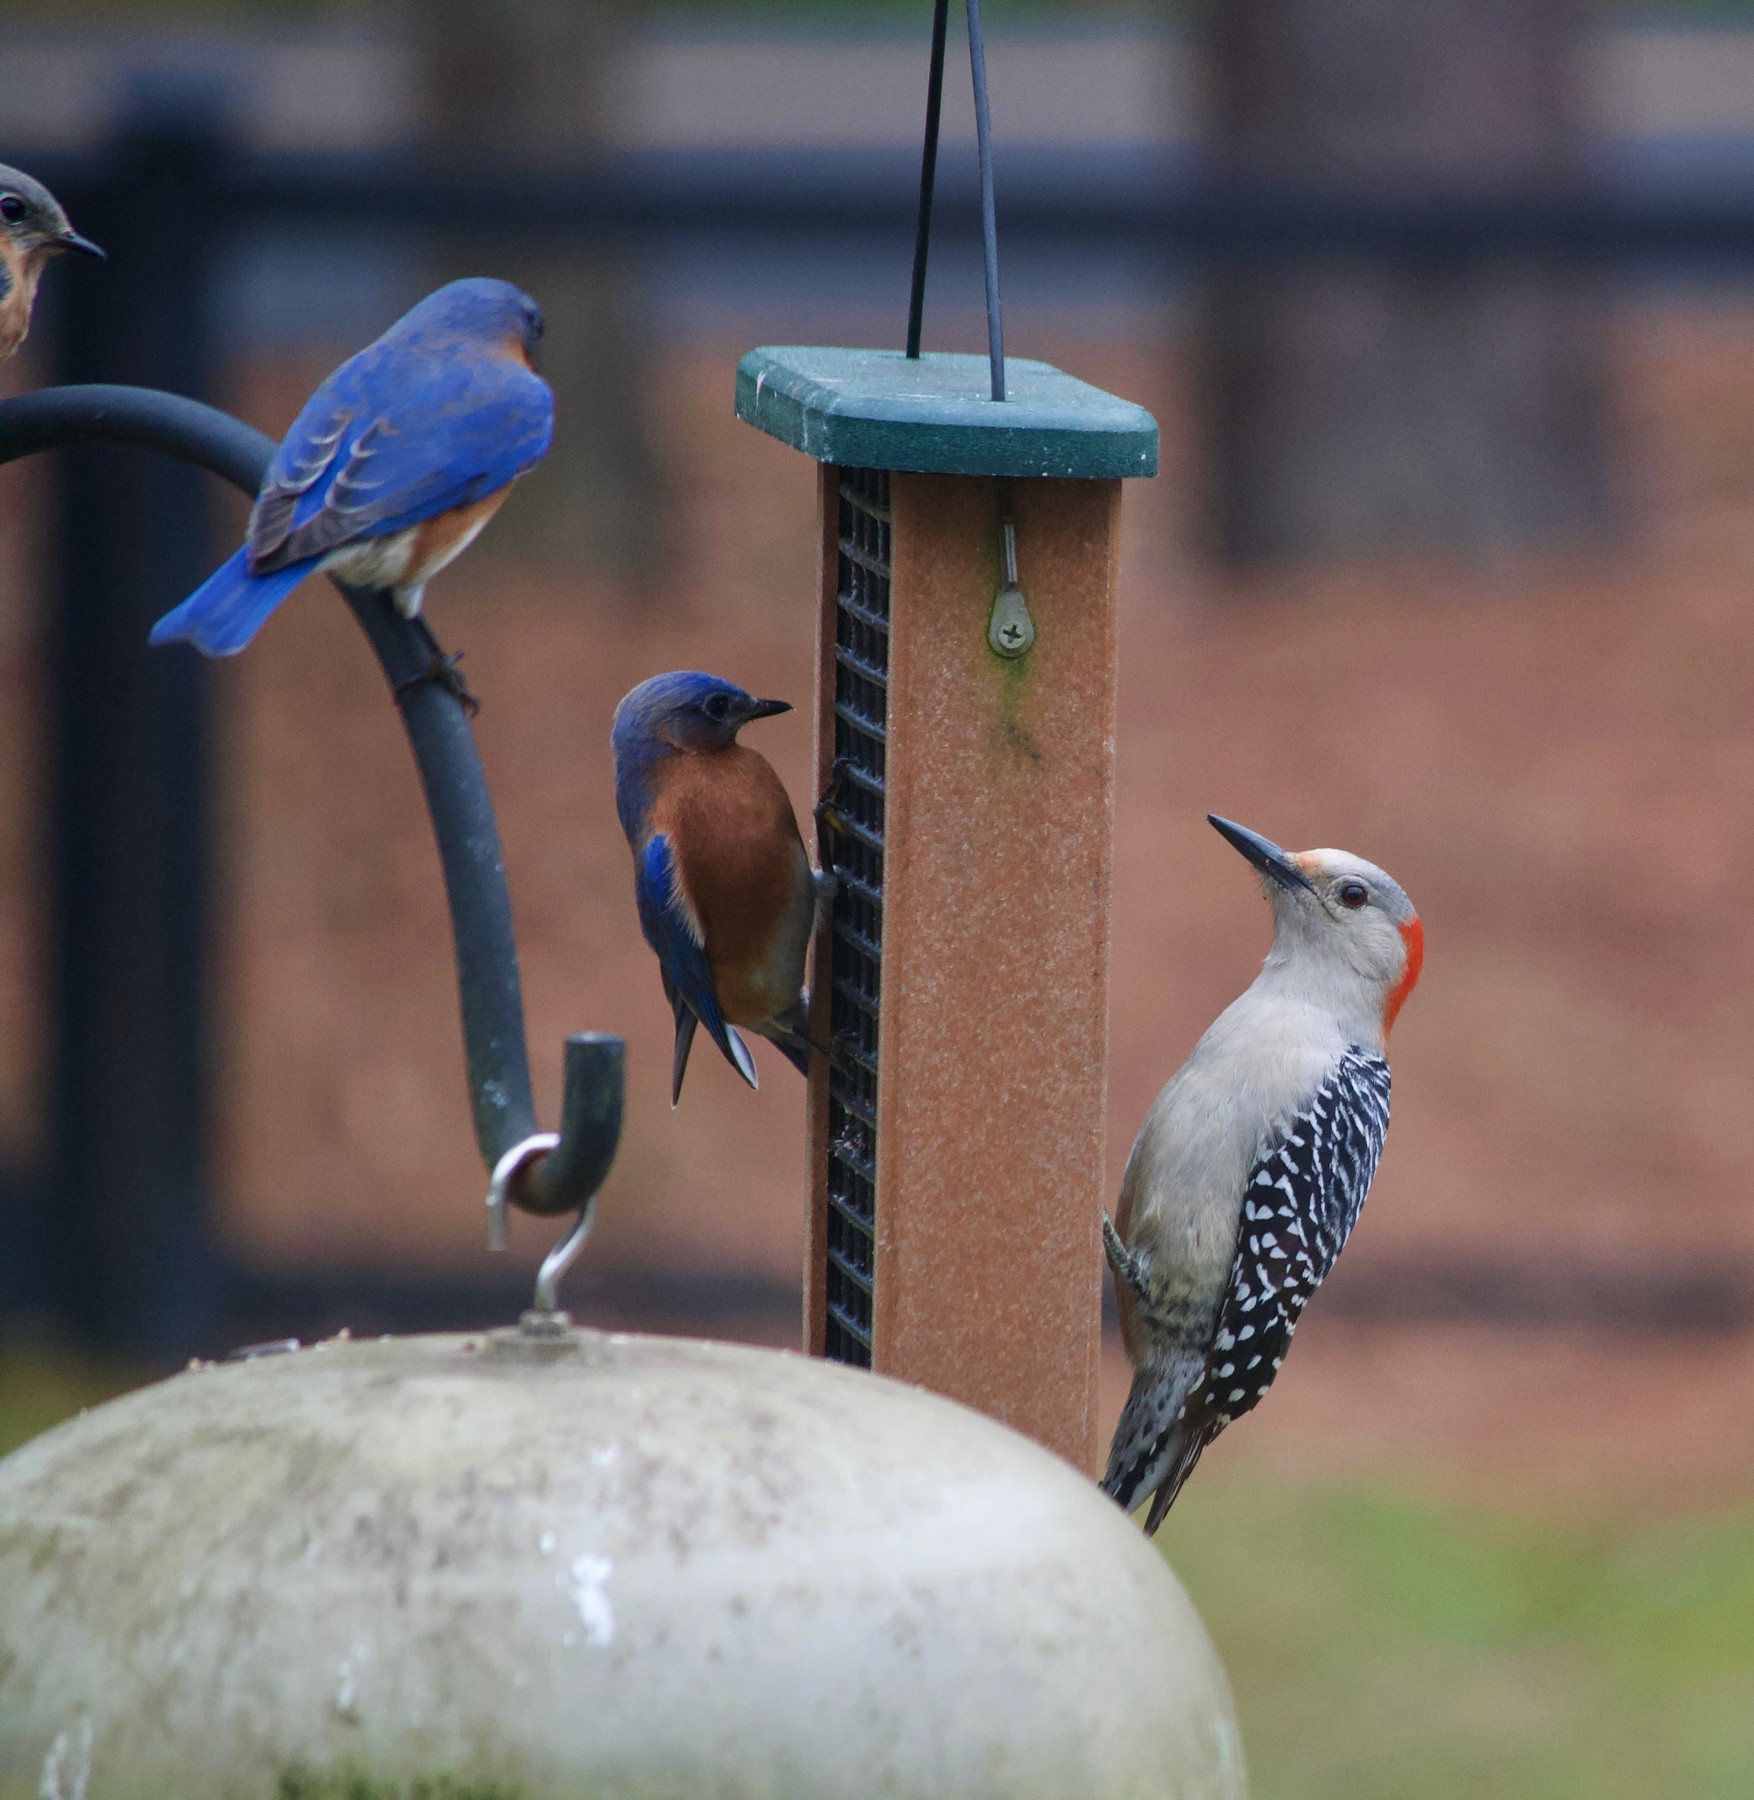 Closeup of a bird feeder. On the feeder are Blue birds and a Red-Bellied woodpecker.